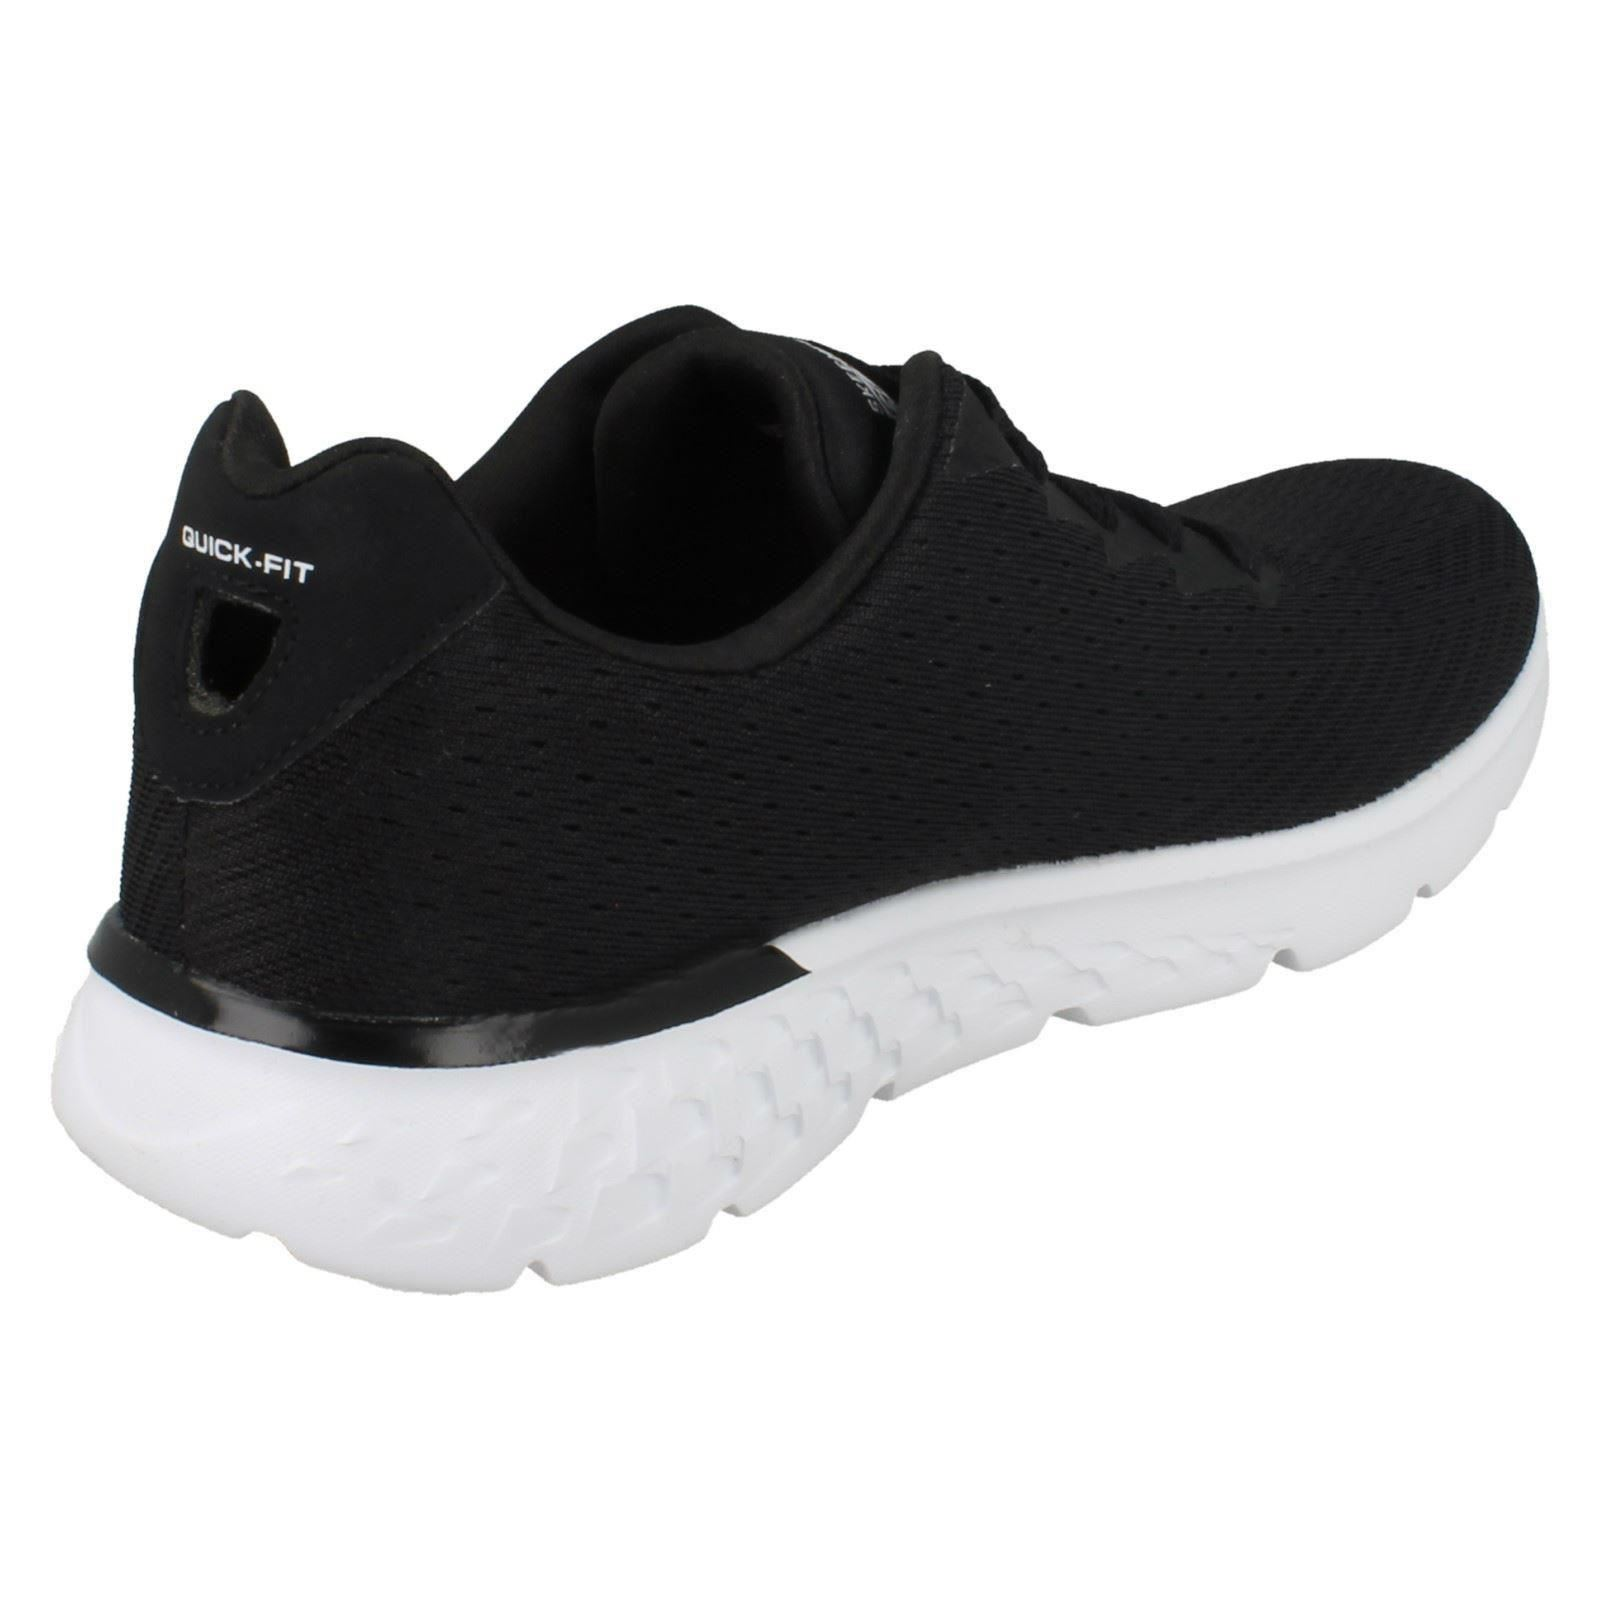 Run Go Damen 14804 Sohle Turnschuhe 400 Skechers AzwwPH